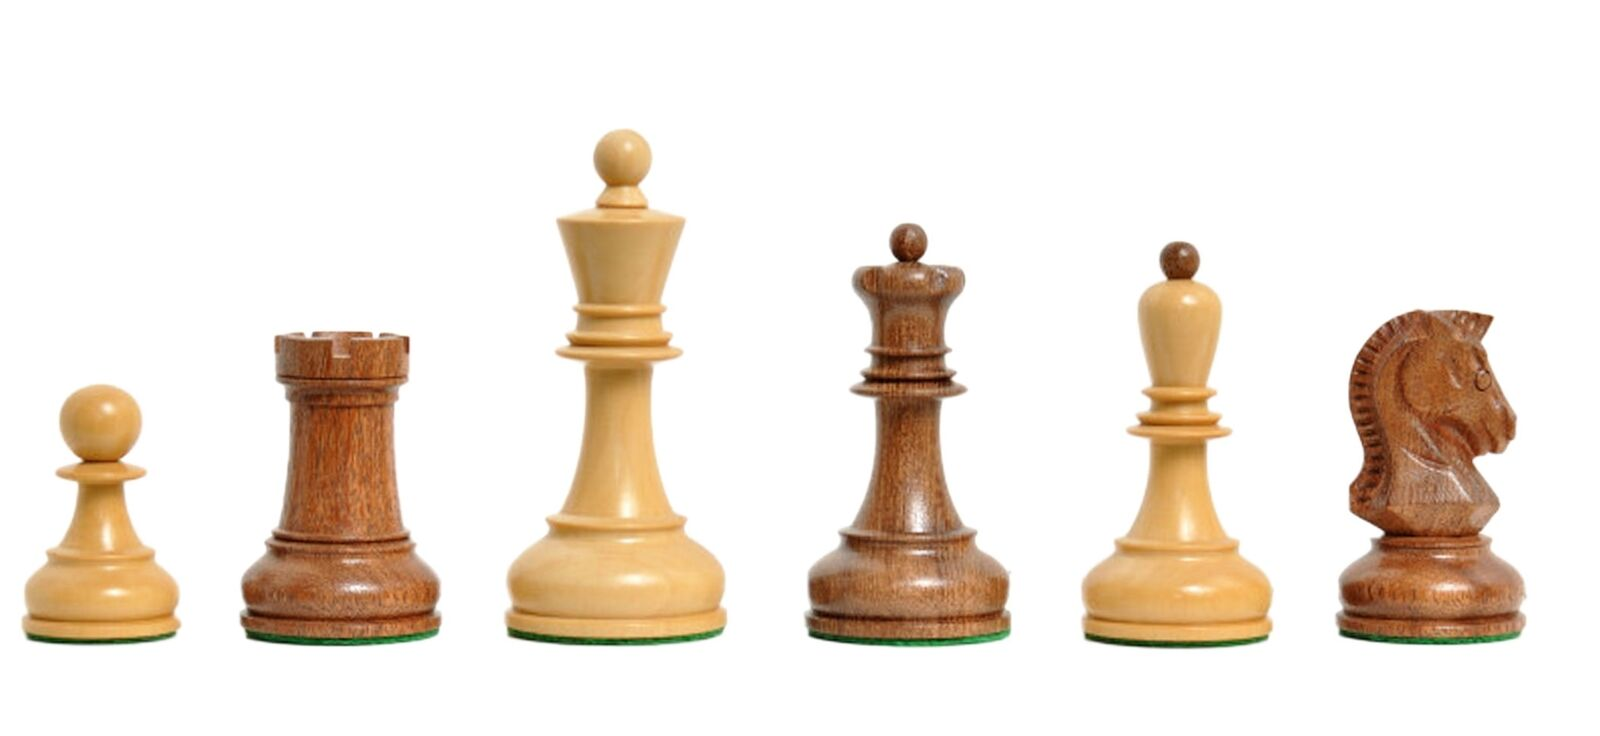 The Dubrovnik Chess Set - Pieces Only - 3.75  King - oroen rosawood